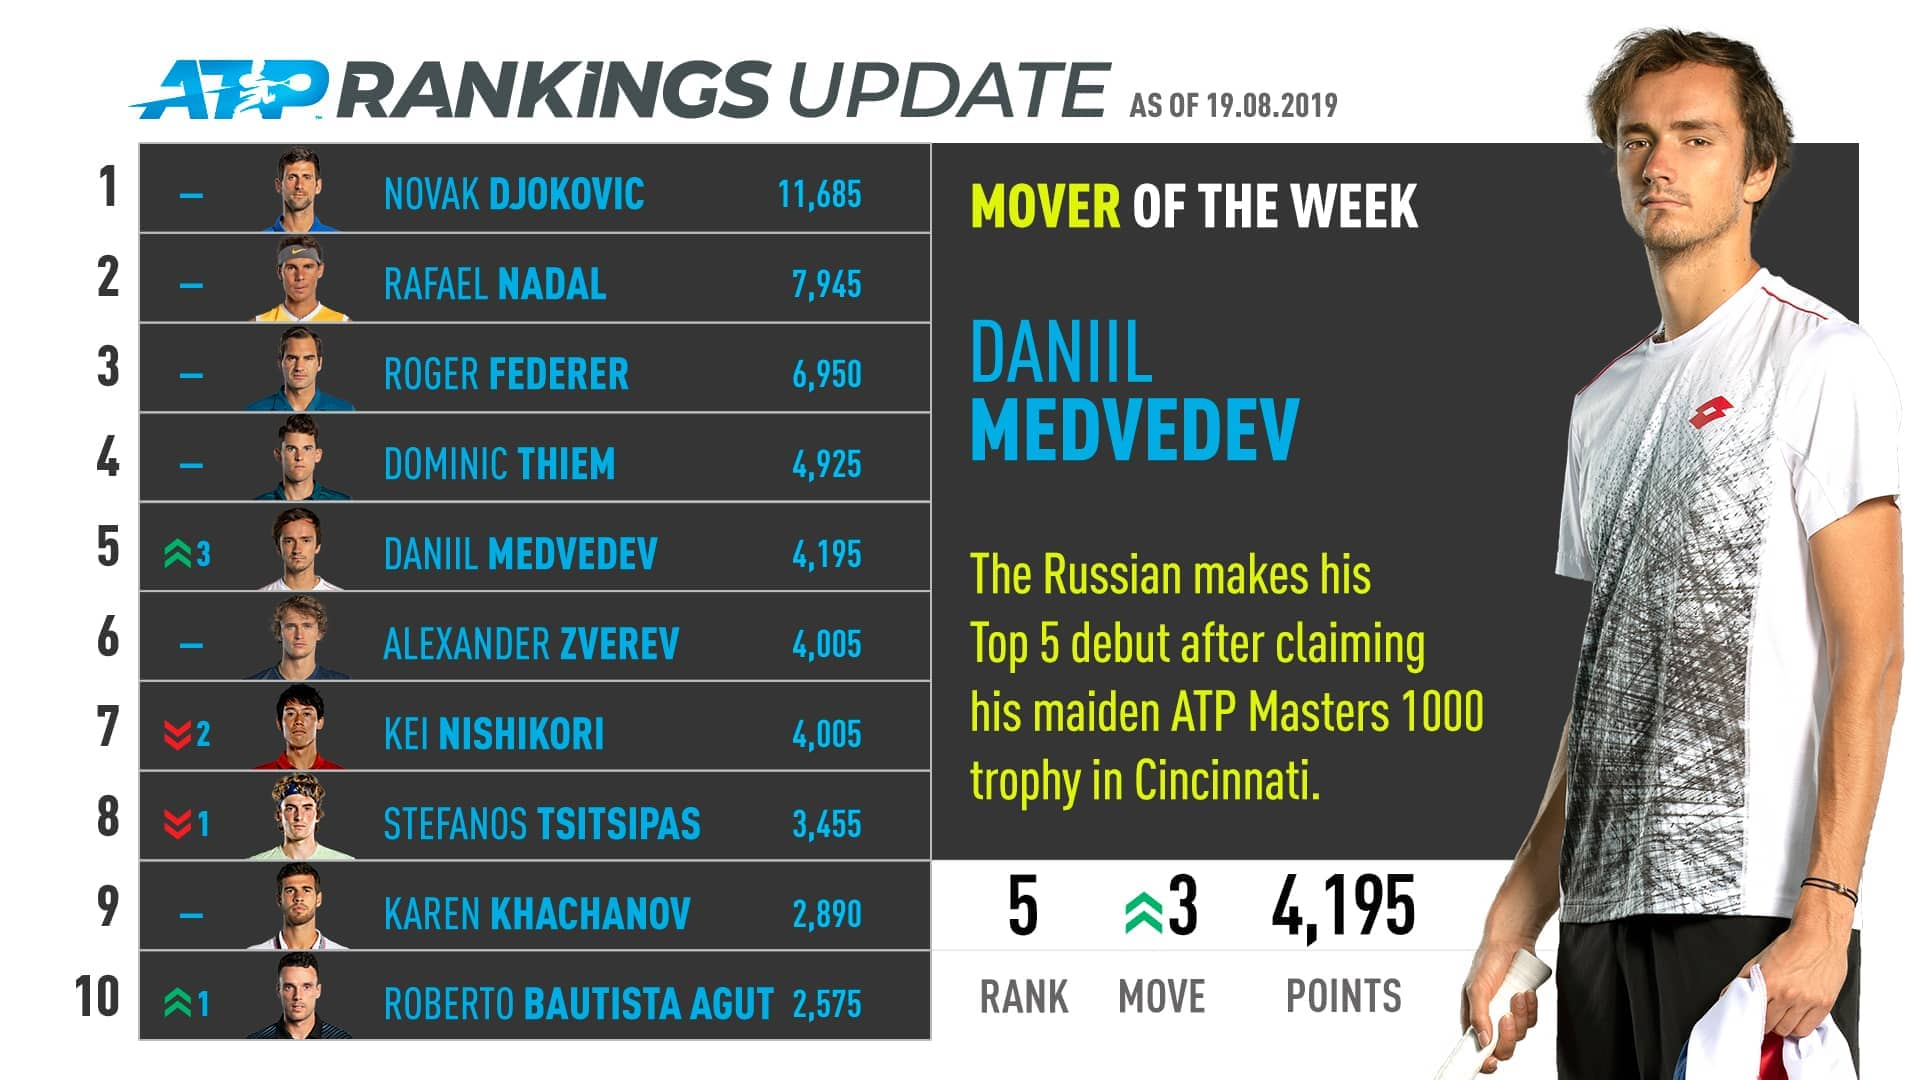 Daniil Medvedev enters the Top 5 in the ATP Rankings for the first time after winning the Western & Southern Open.